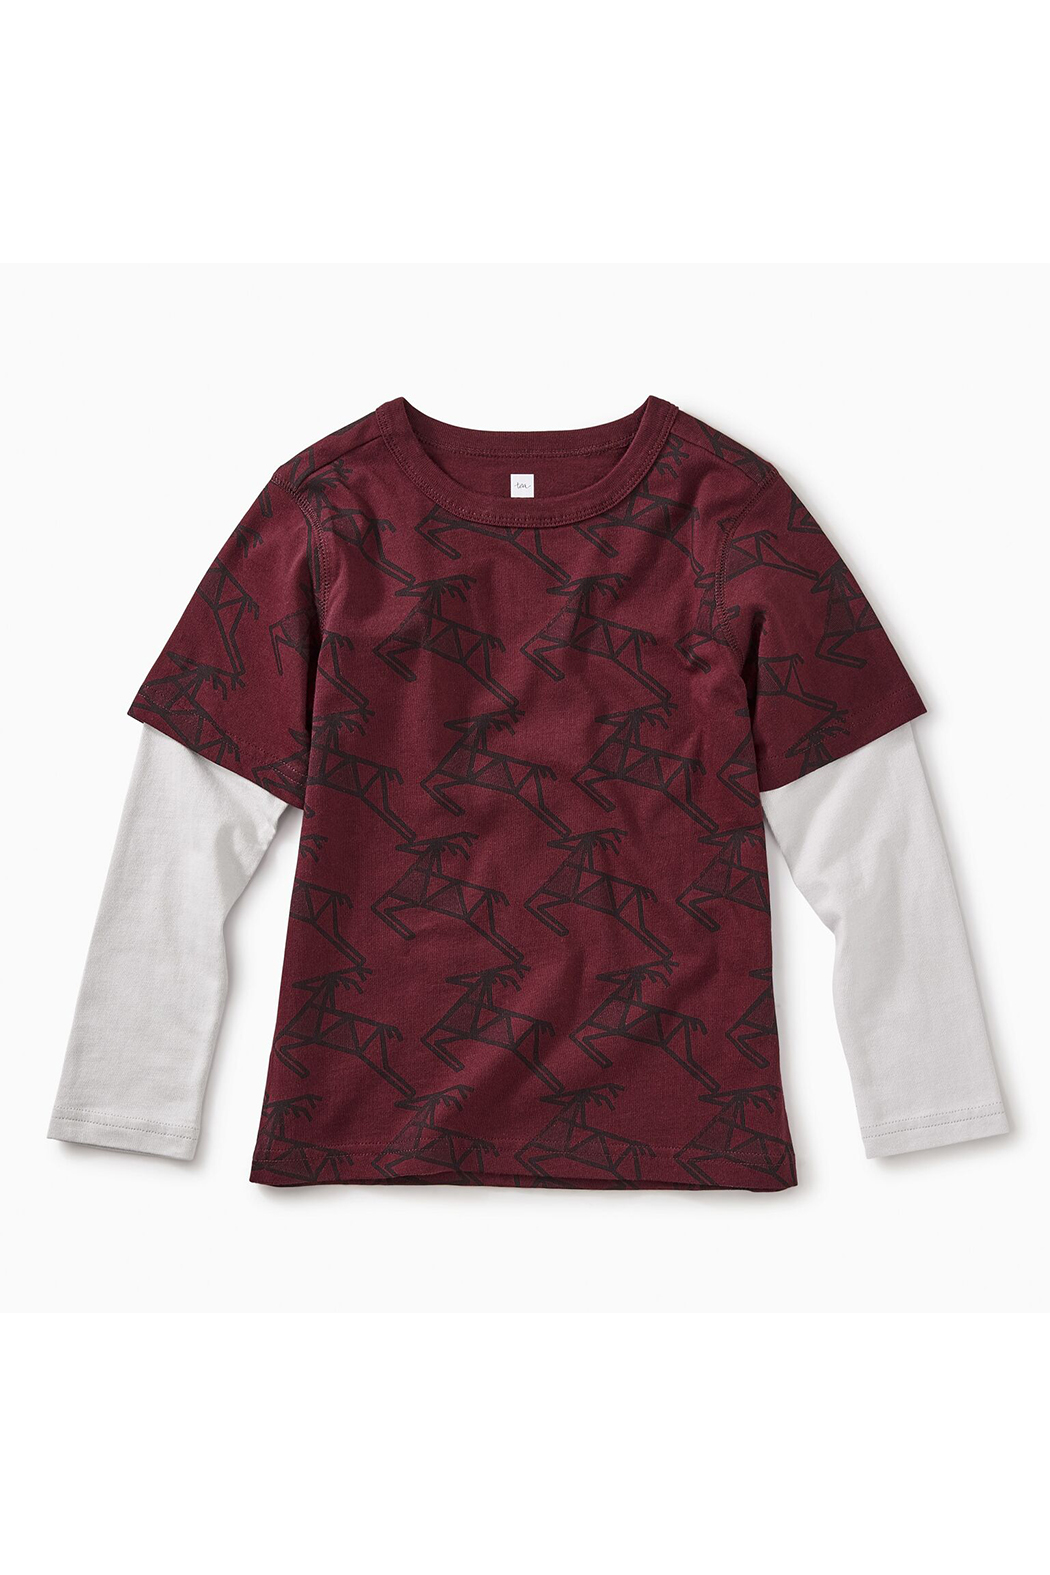 Tea Collection Scandi Stag Layered Tee - Front Cropped Image